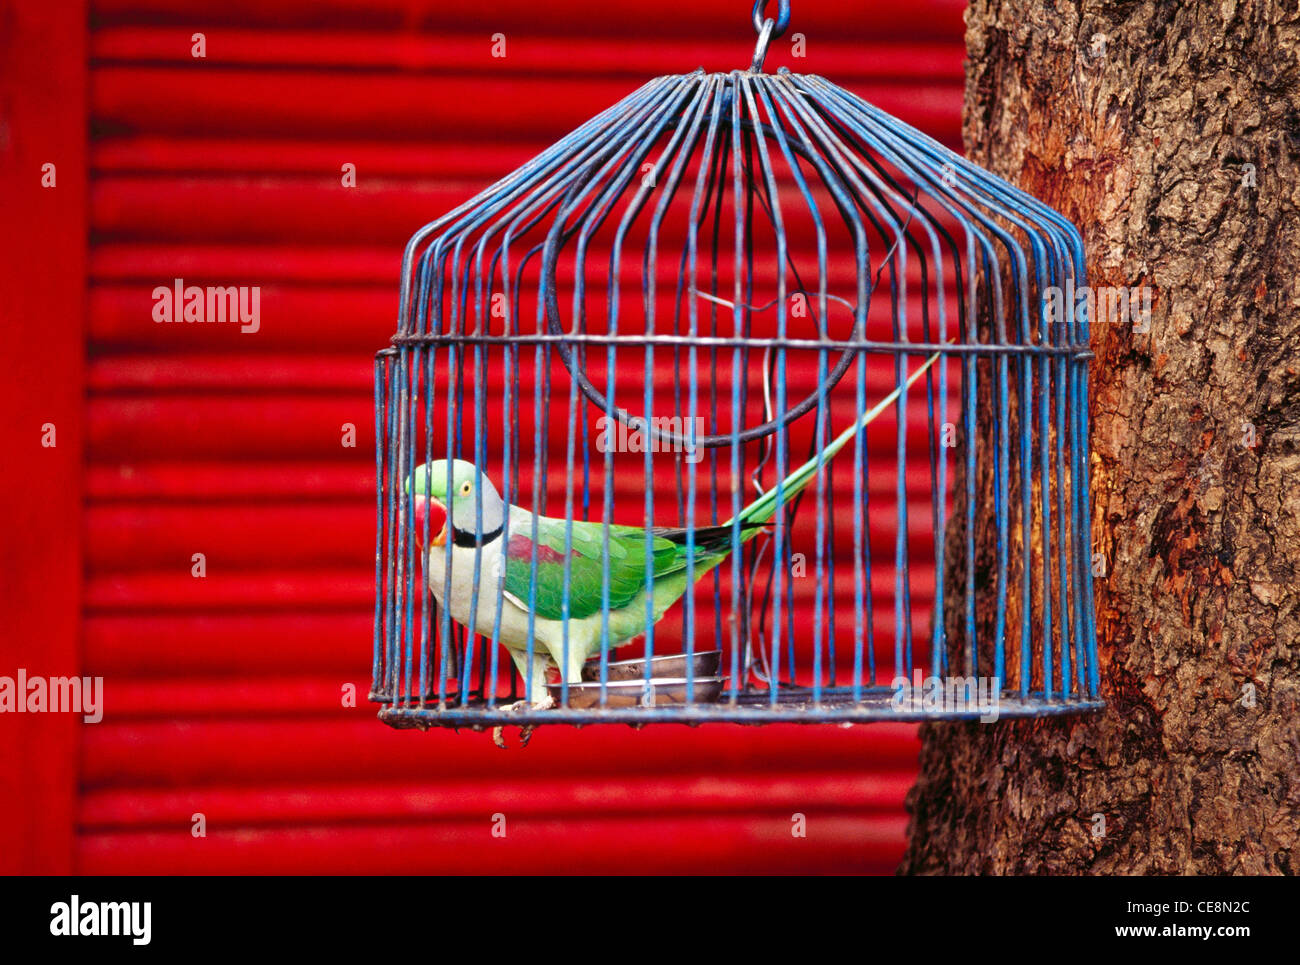 AAD 80051 : indian Bird Parrot In Cage Bandhavgarh national park Madhya Pradesh India Stock Photo